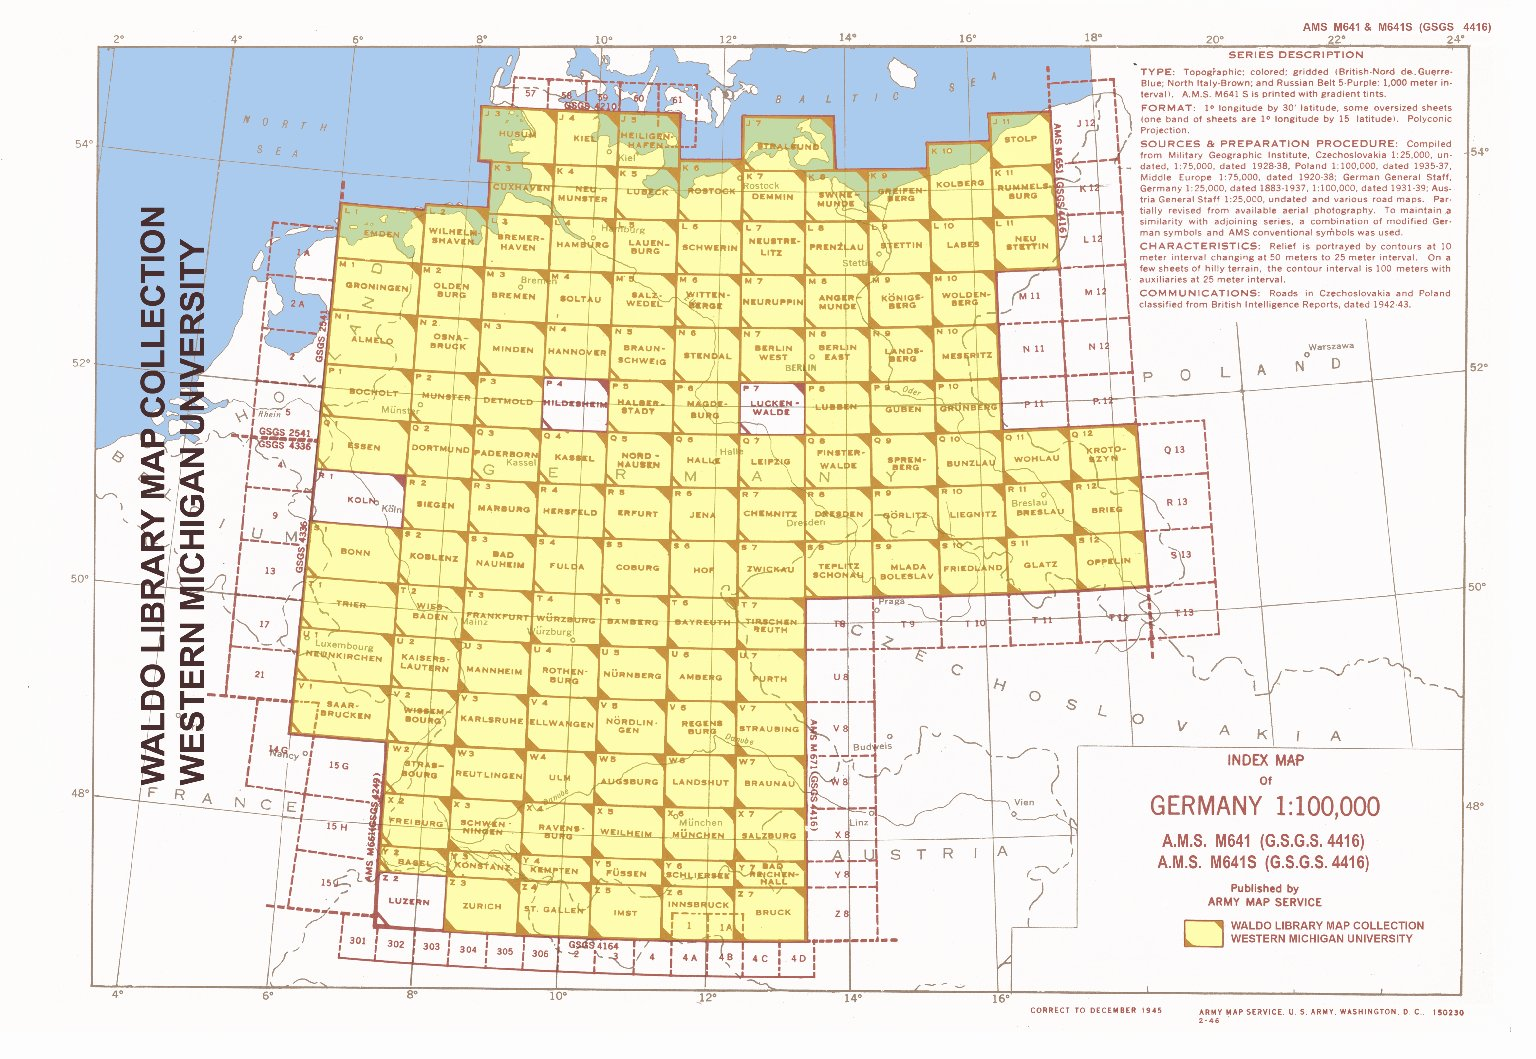 Index map of Germany 1:100,000